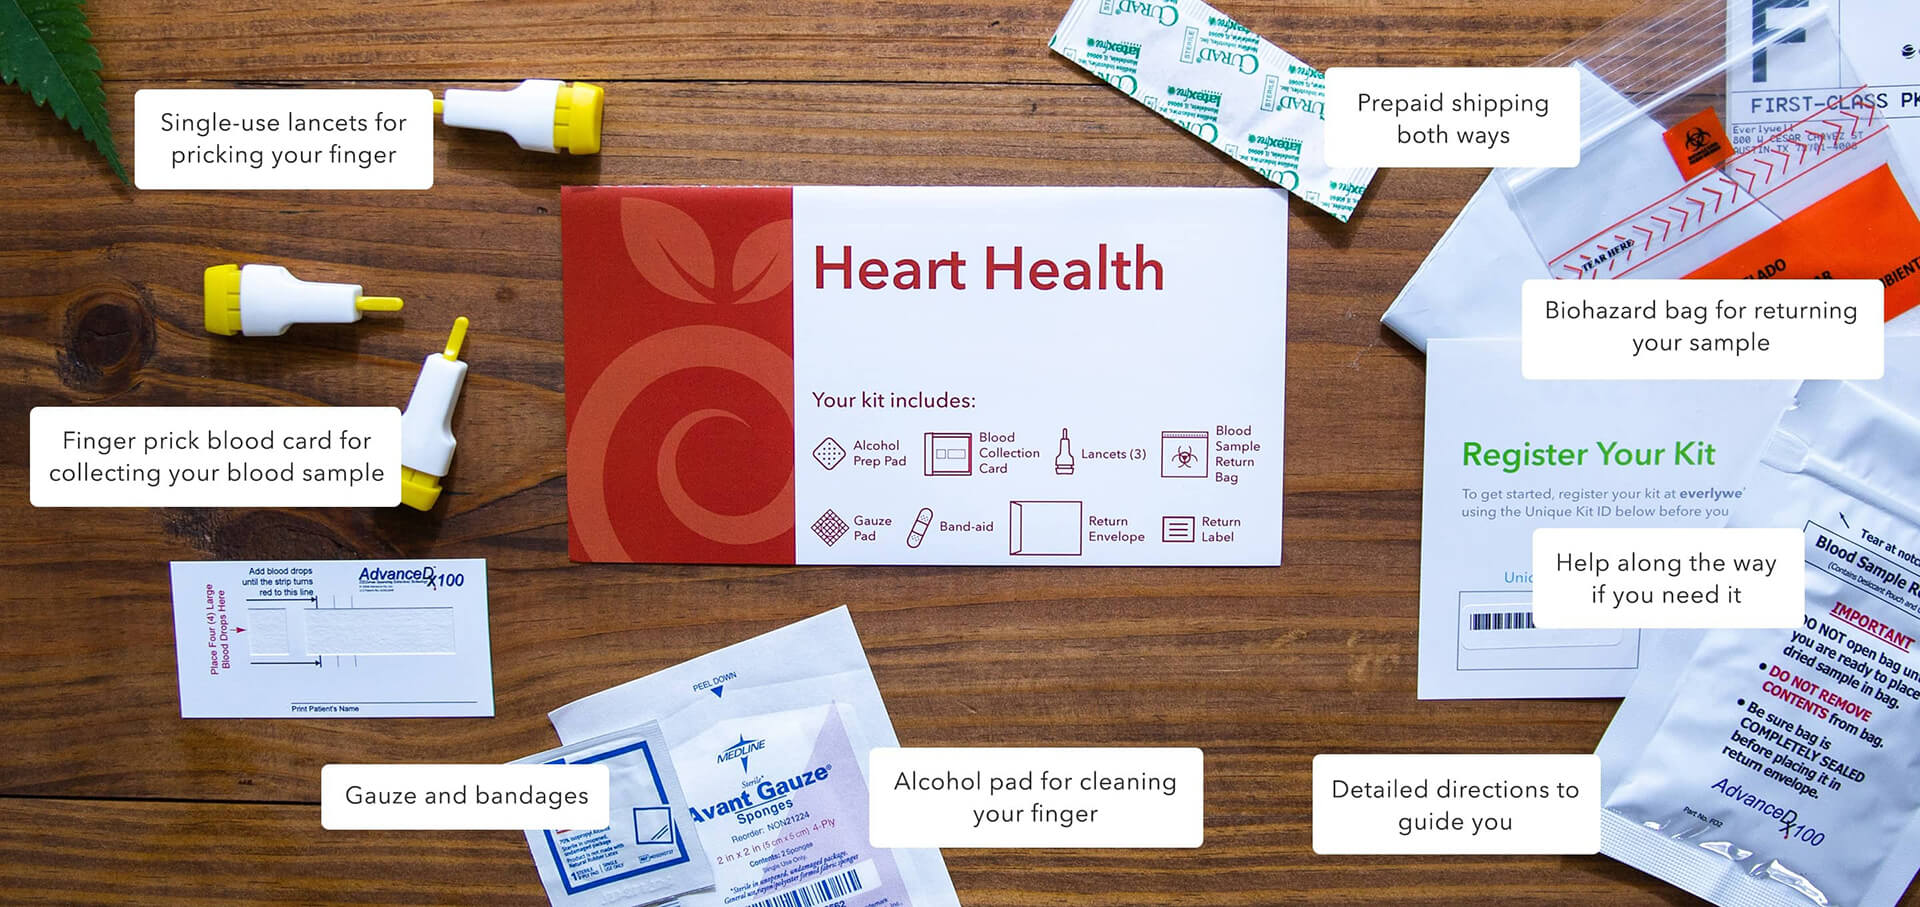 At-home Heart Health Test kit components